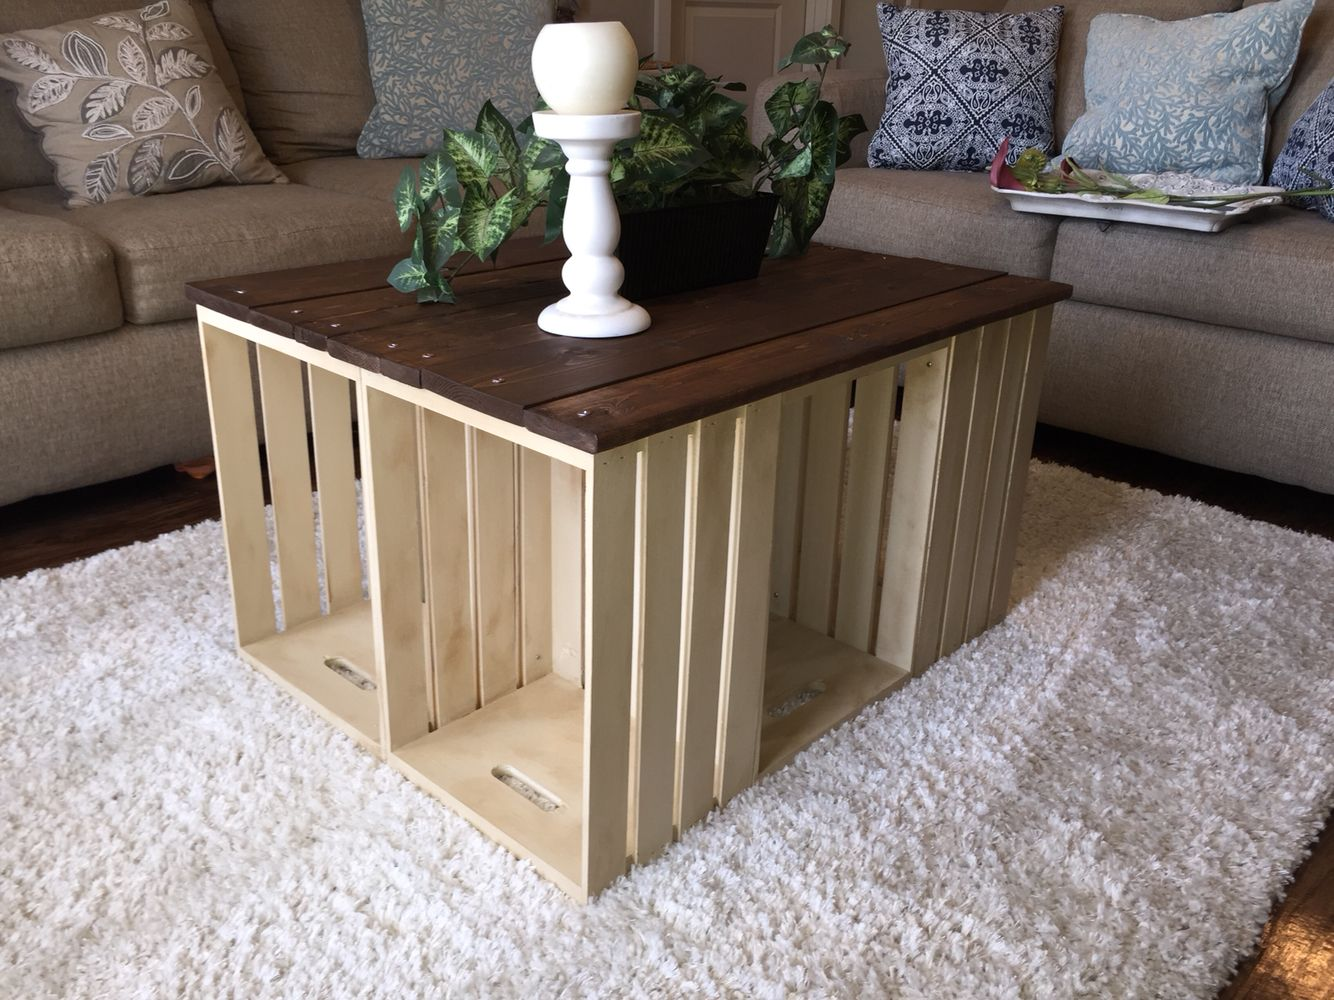 Country french crate coffee table dream home pinterest country french crate coffee table geotapseo Gallery